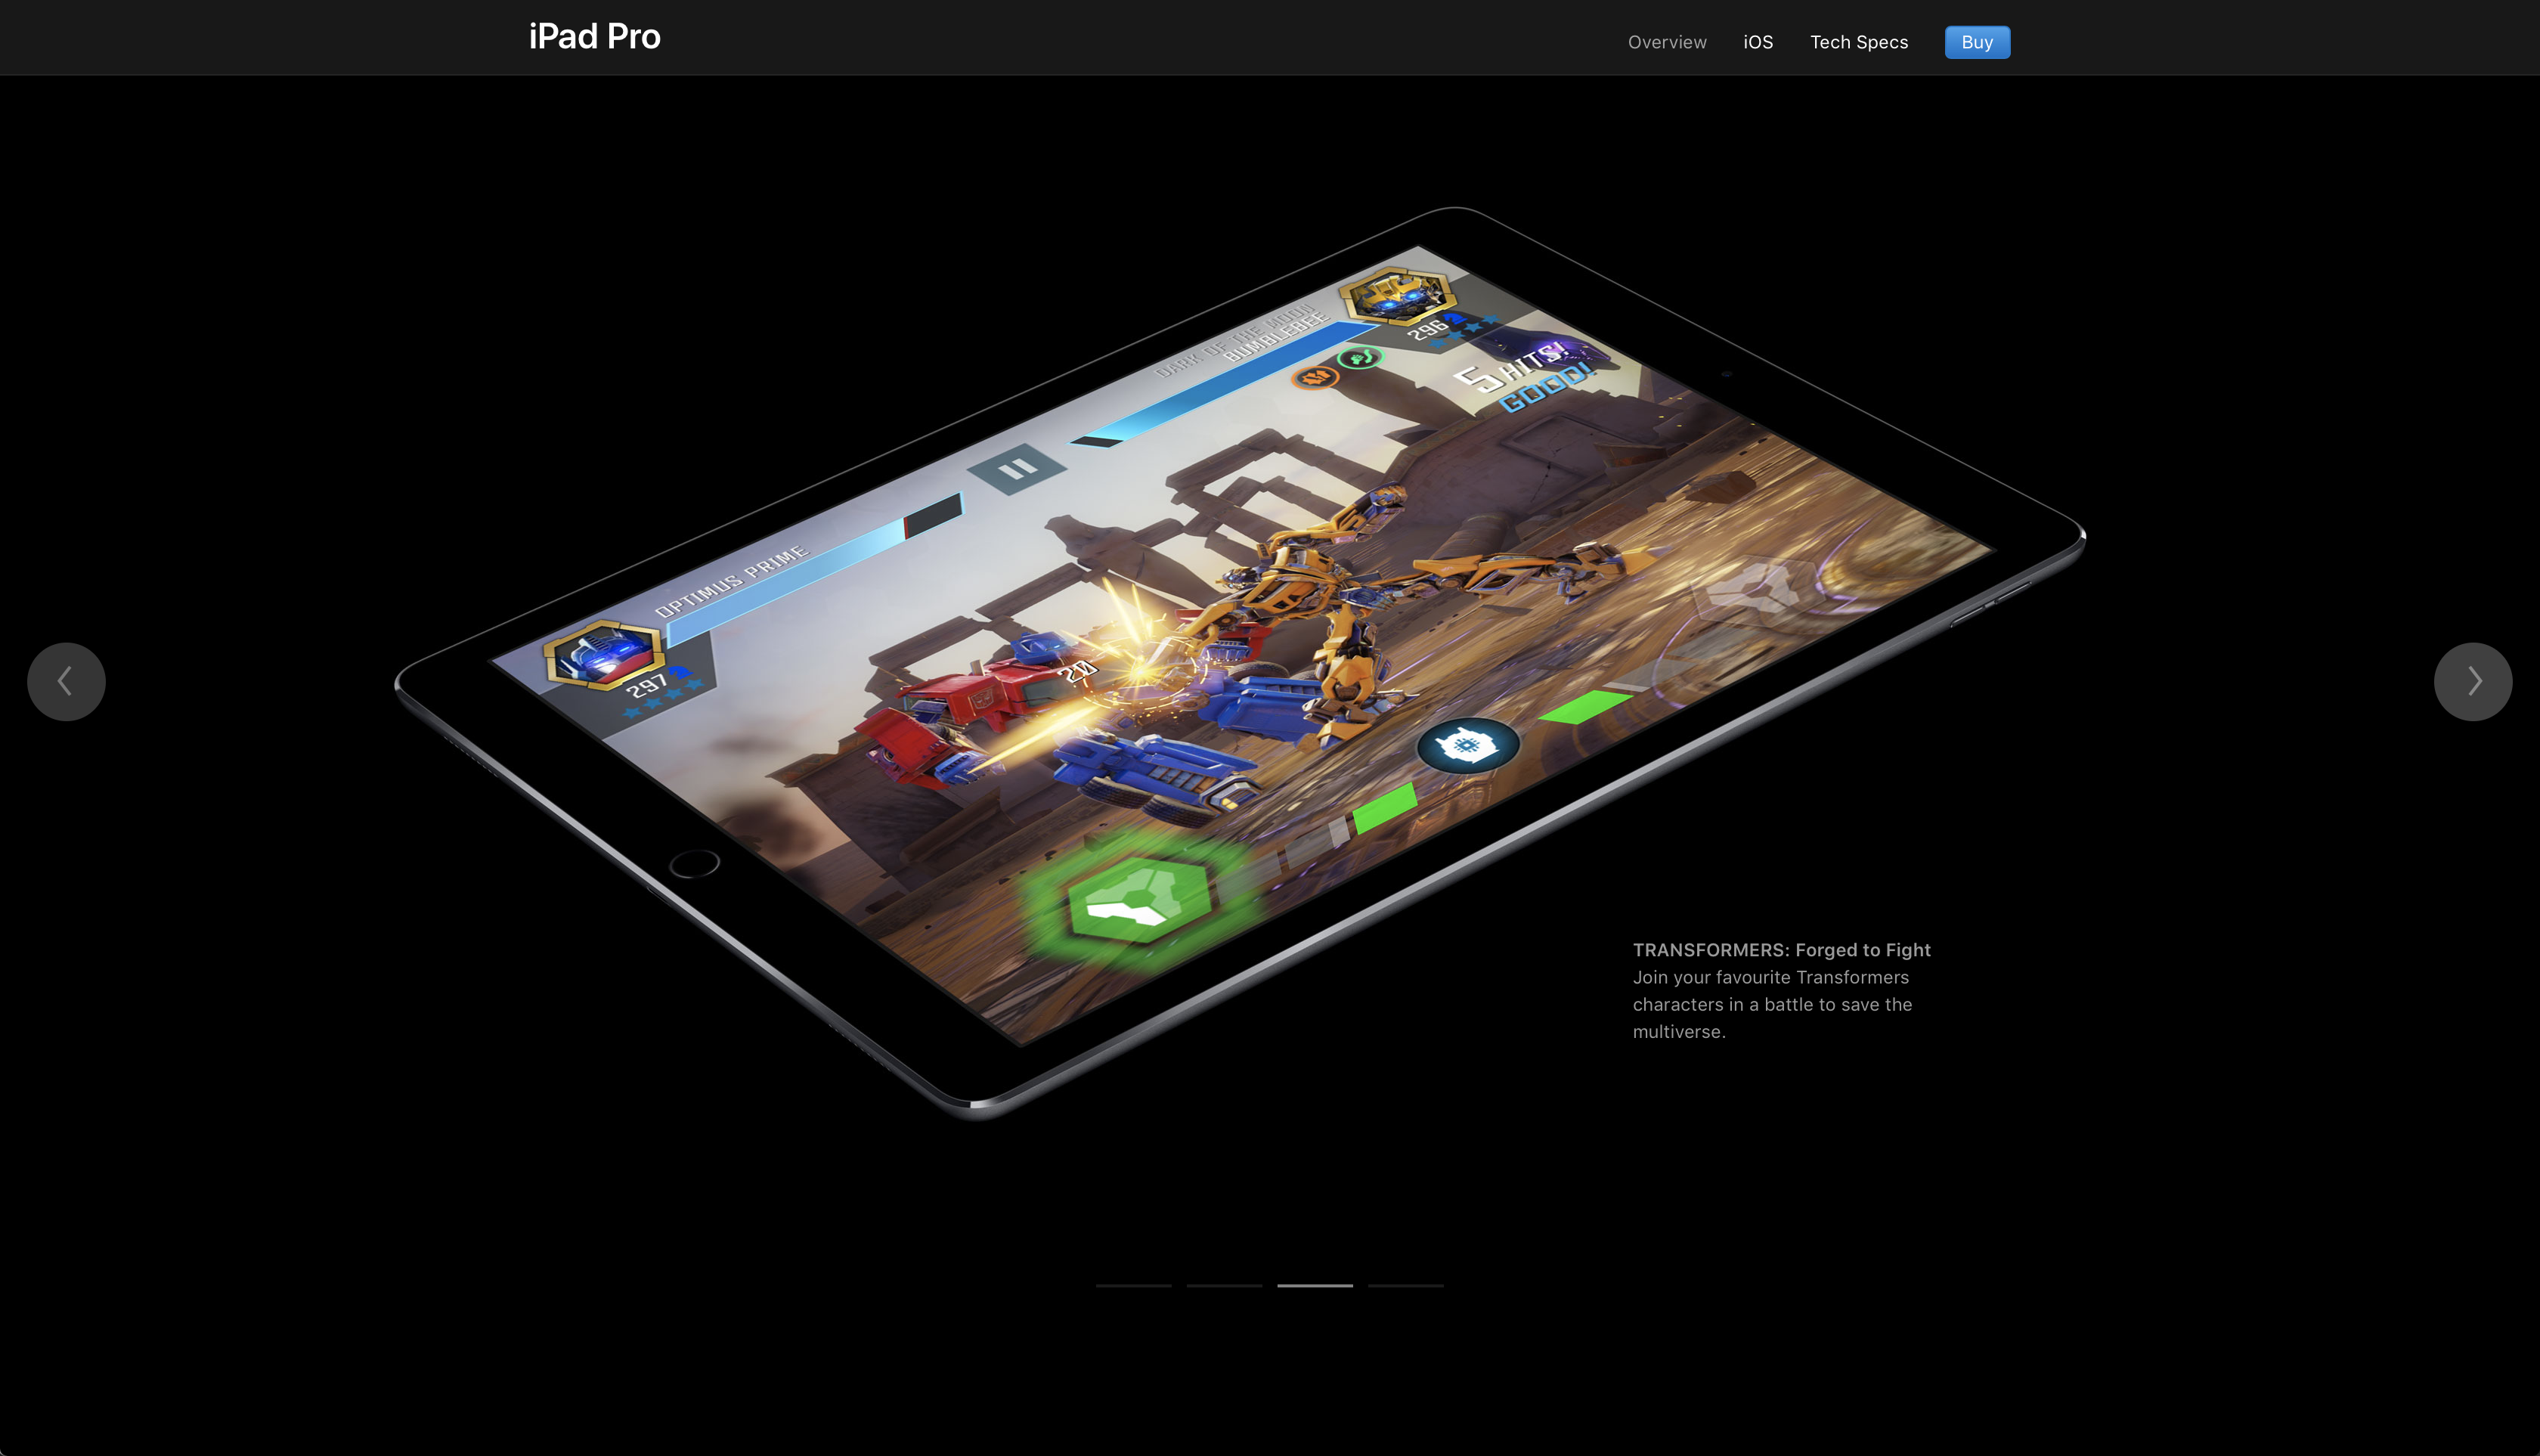 Pin by monotyper on apple website (With images) Ipad pro